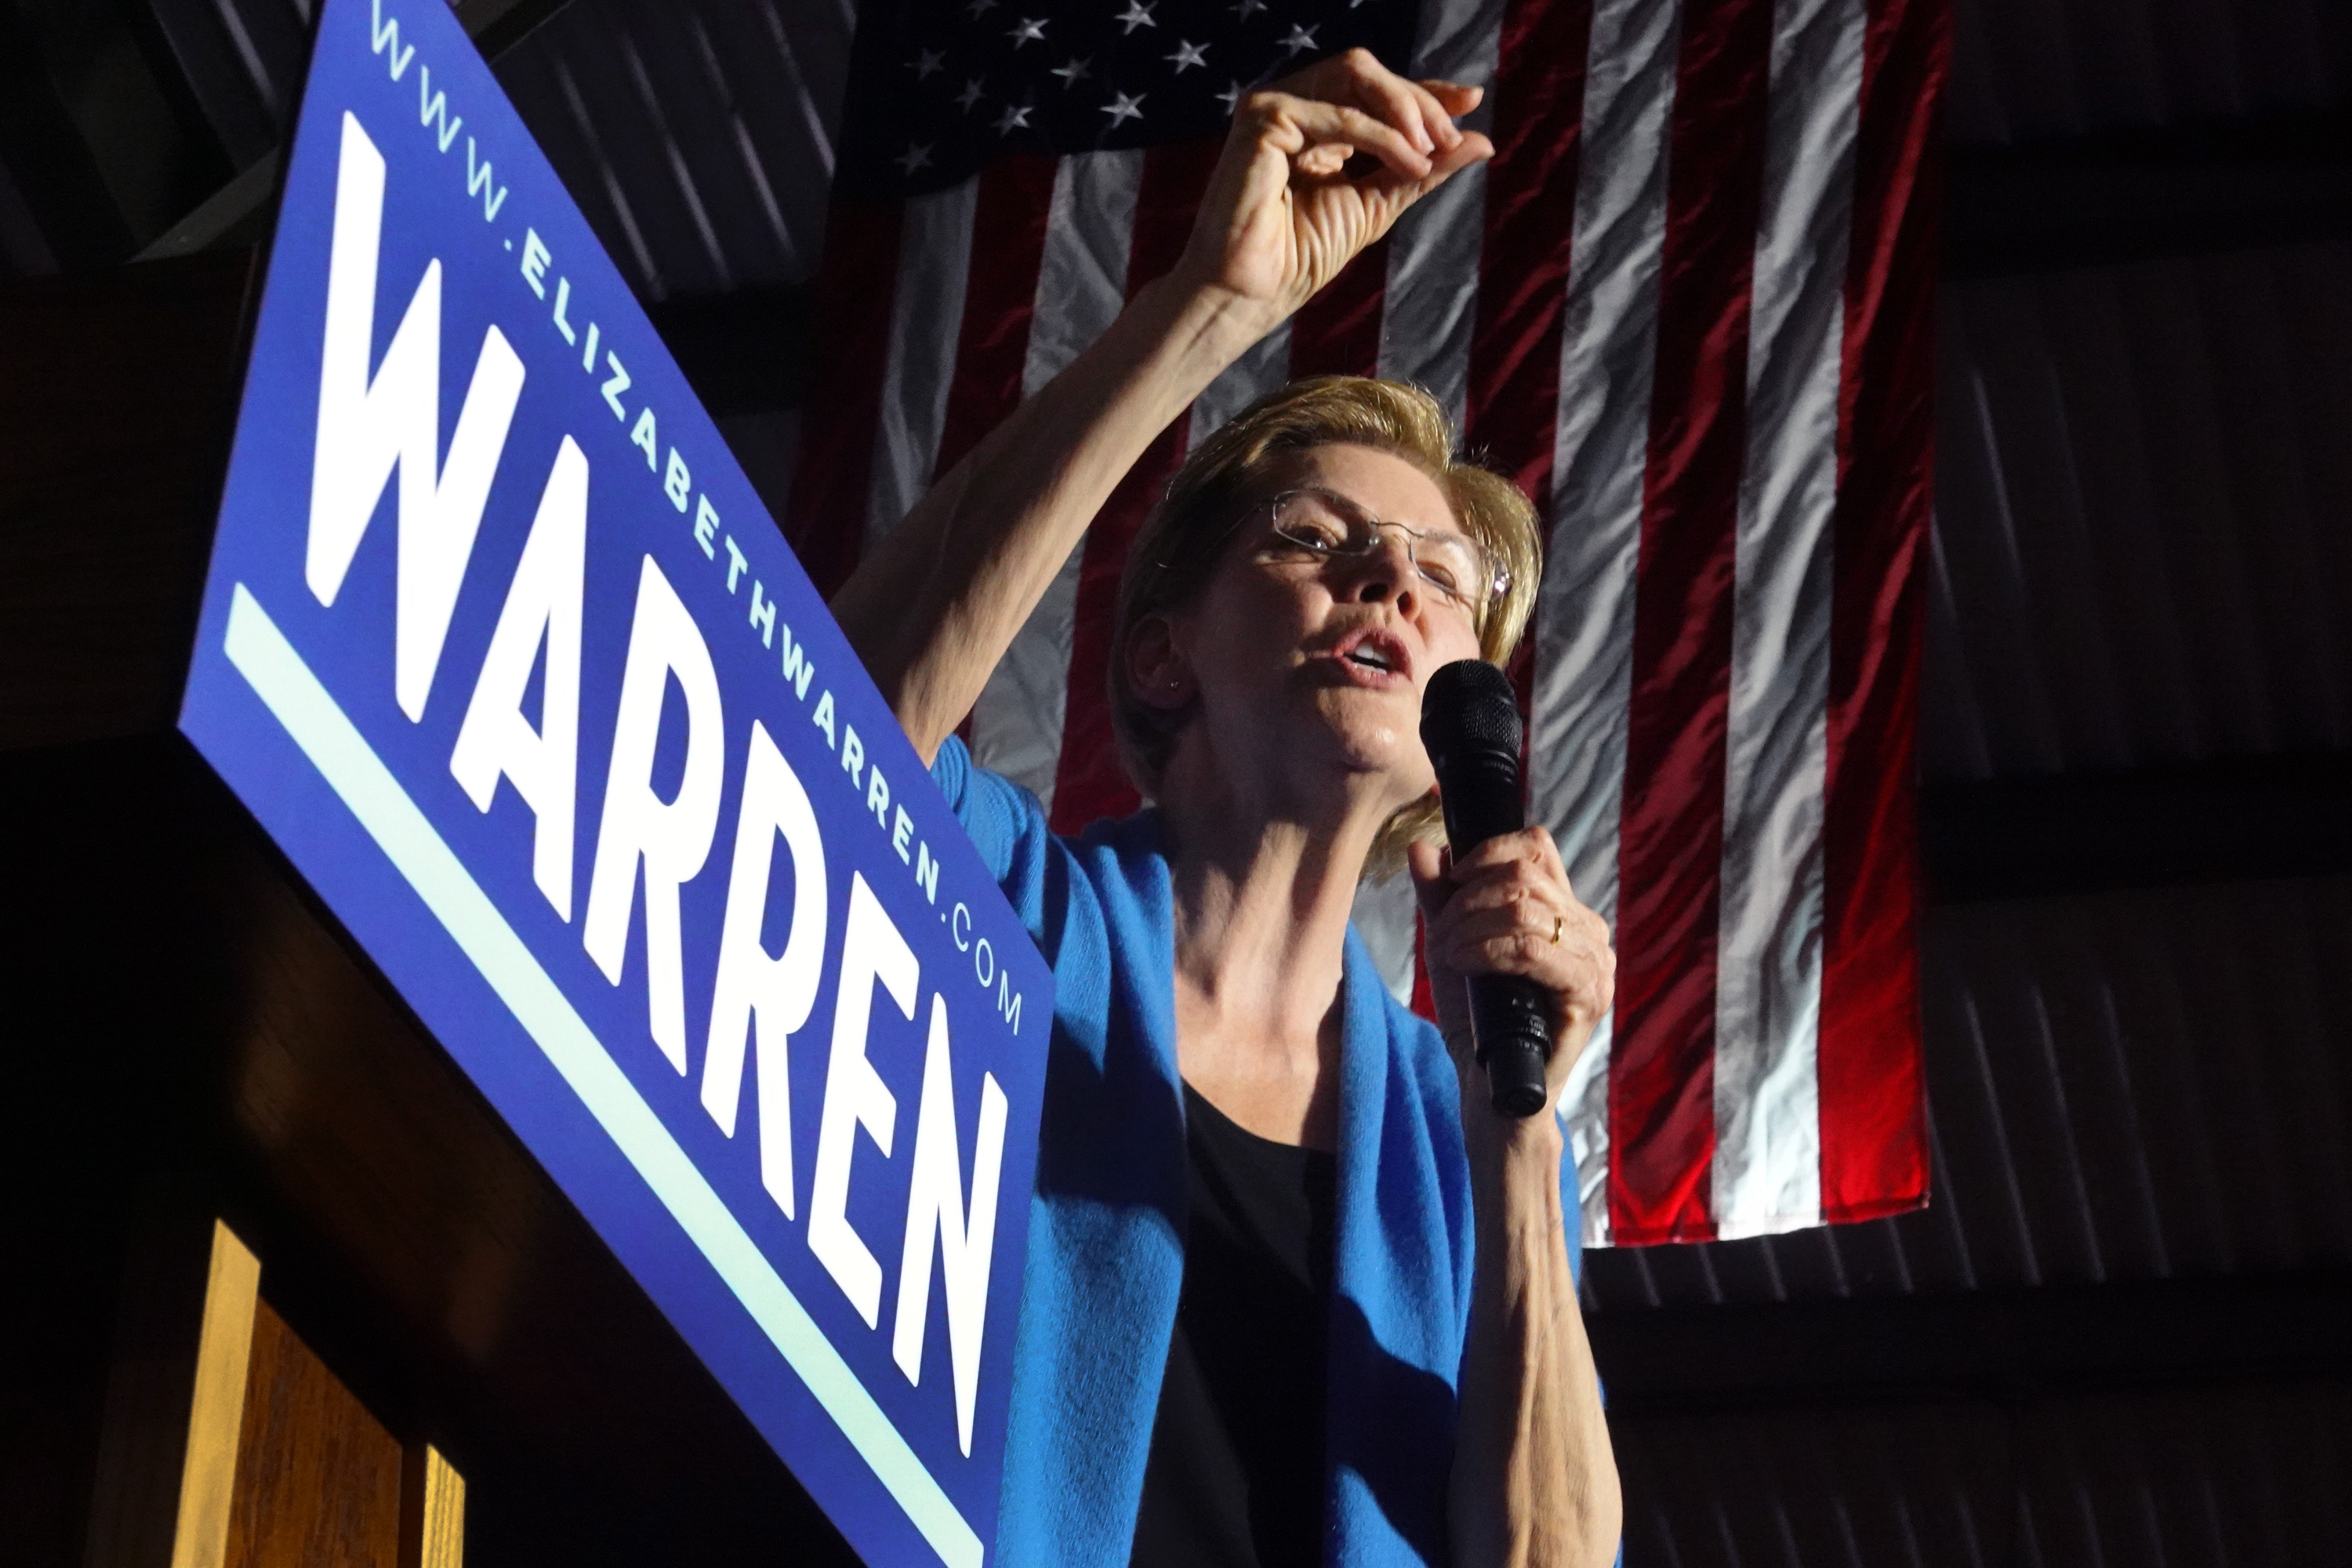 DETROIT, MICHIGAN - MARCH 03: Democratic presidential candidate Sen. Elizabeth Warren (D-MA) speaks to supporters during a rally at Eastern Market as Super Tuesday results continue to come in on March 03, 2020 in Detroit, Michigan. Voters in 14 states and American Samoa go to the polls today. (Photo by Scott Olson/Getty Images)